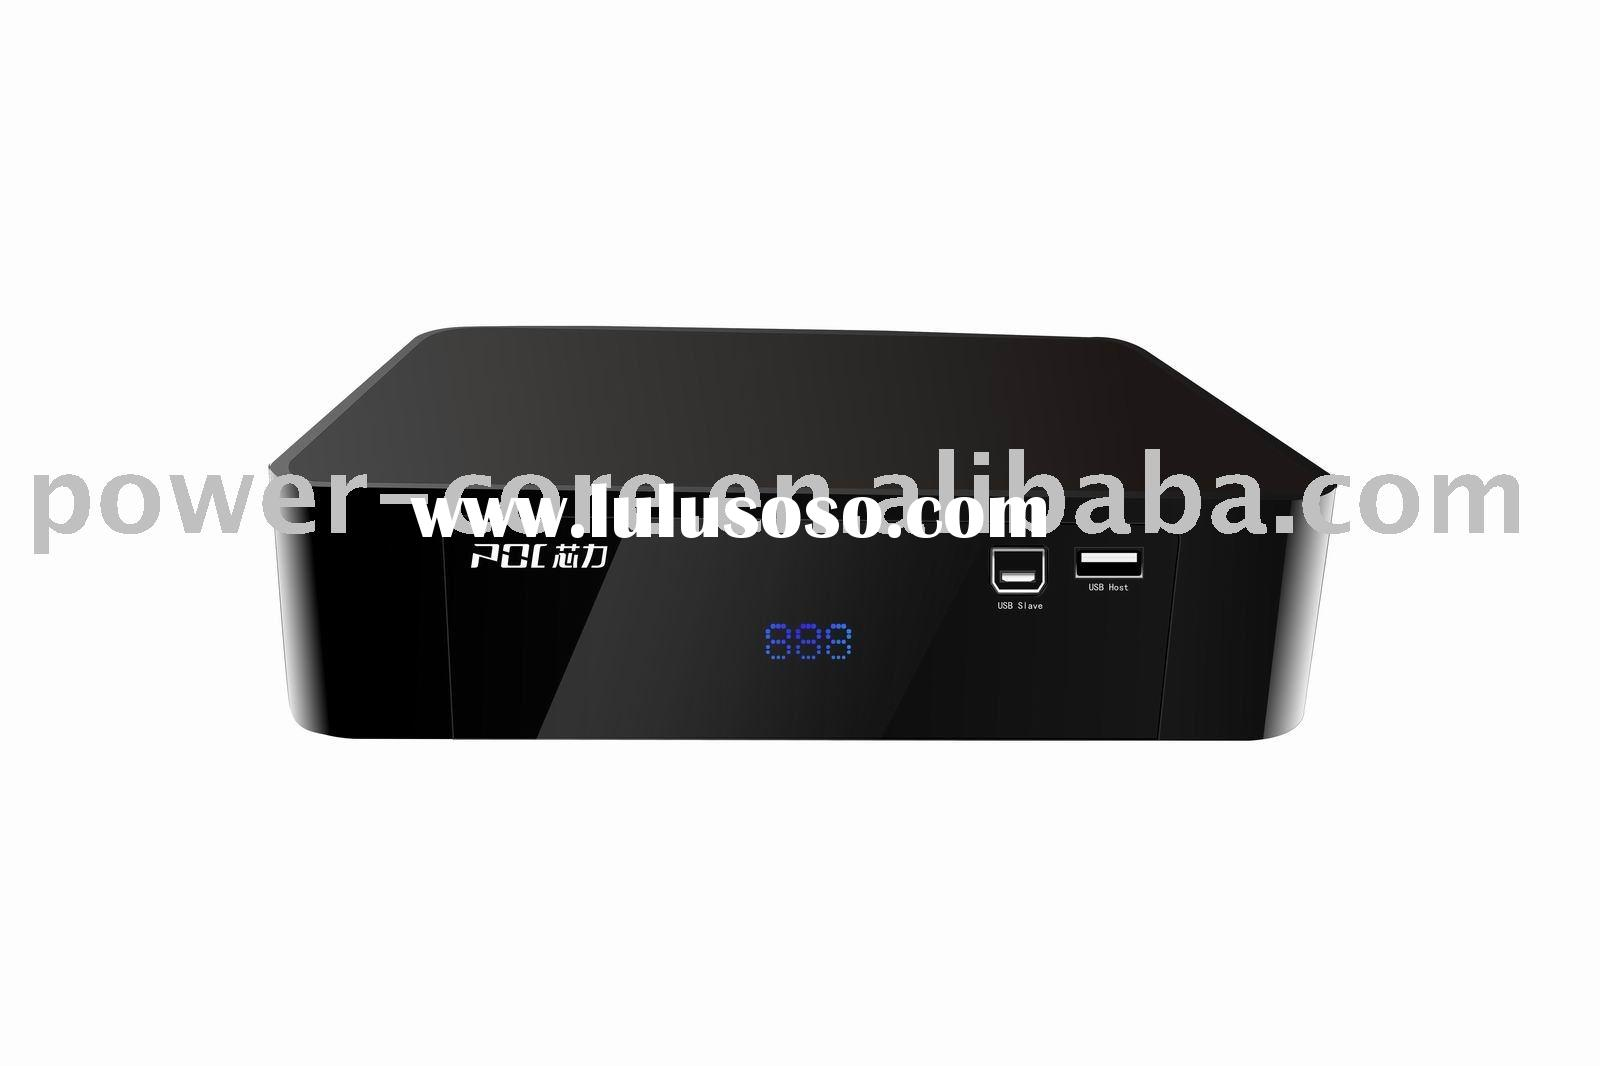 DVB-T HD Set Top Box with built-in HDD capability